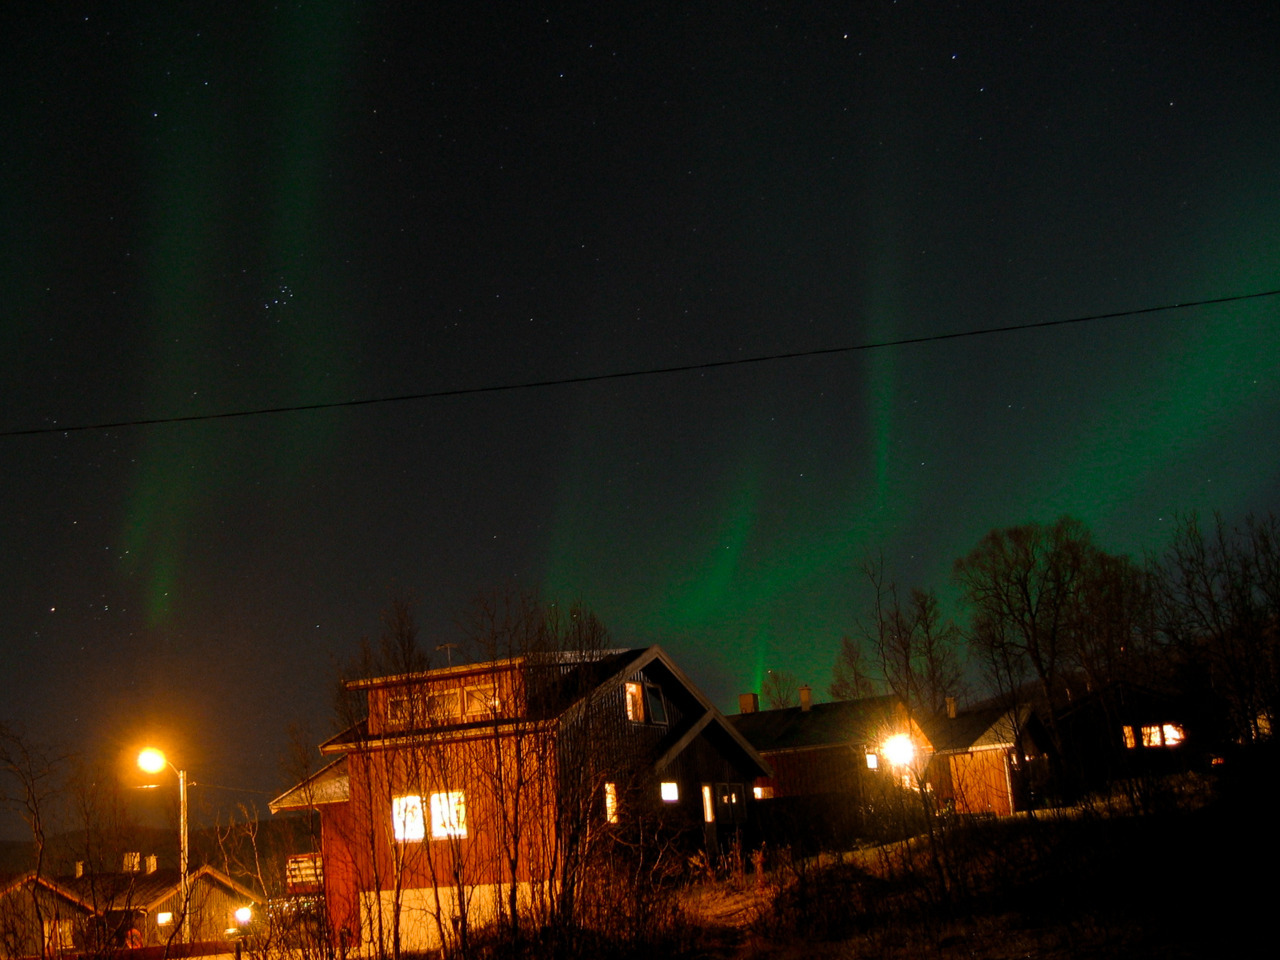 Tromsø, Norway 2004. First attempt of photographing the Northern Lights, taken on colour slide. Haven't had nearly enough opportunities to improve my efforts.